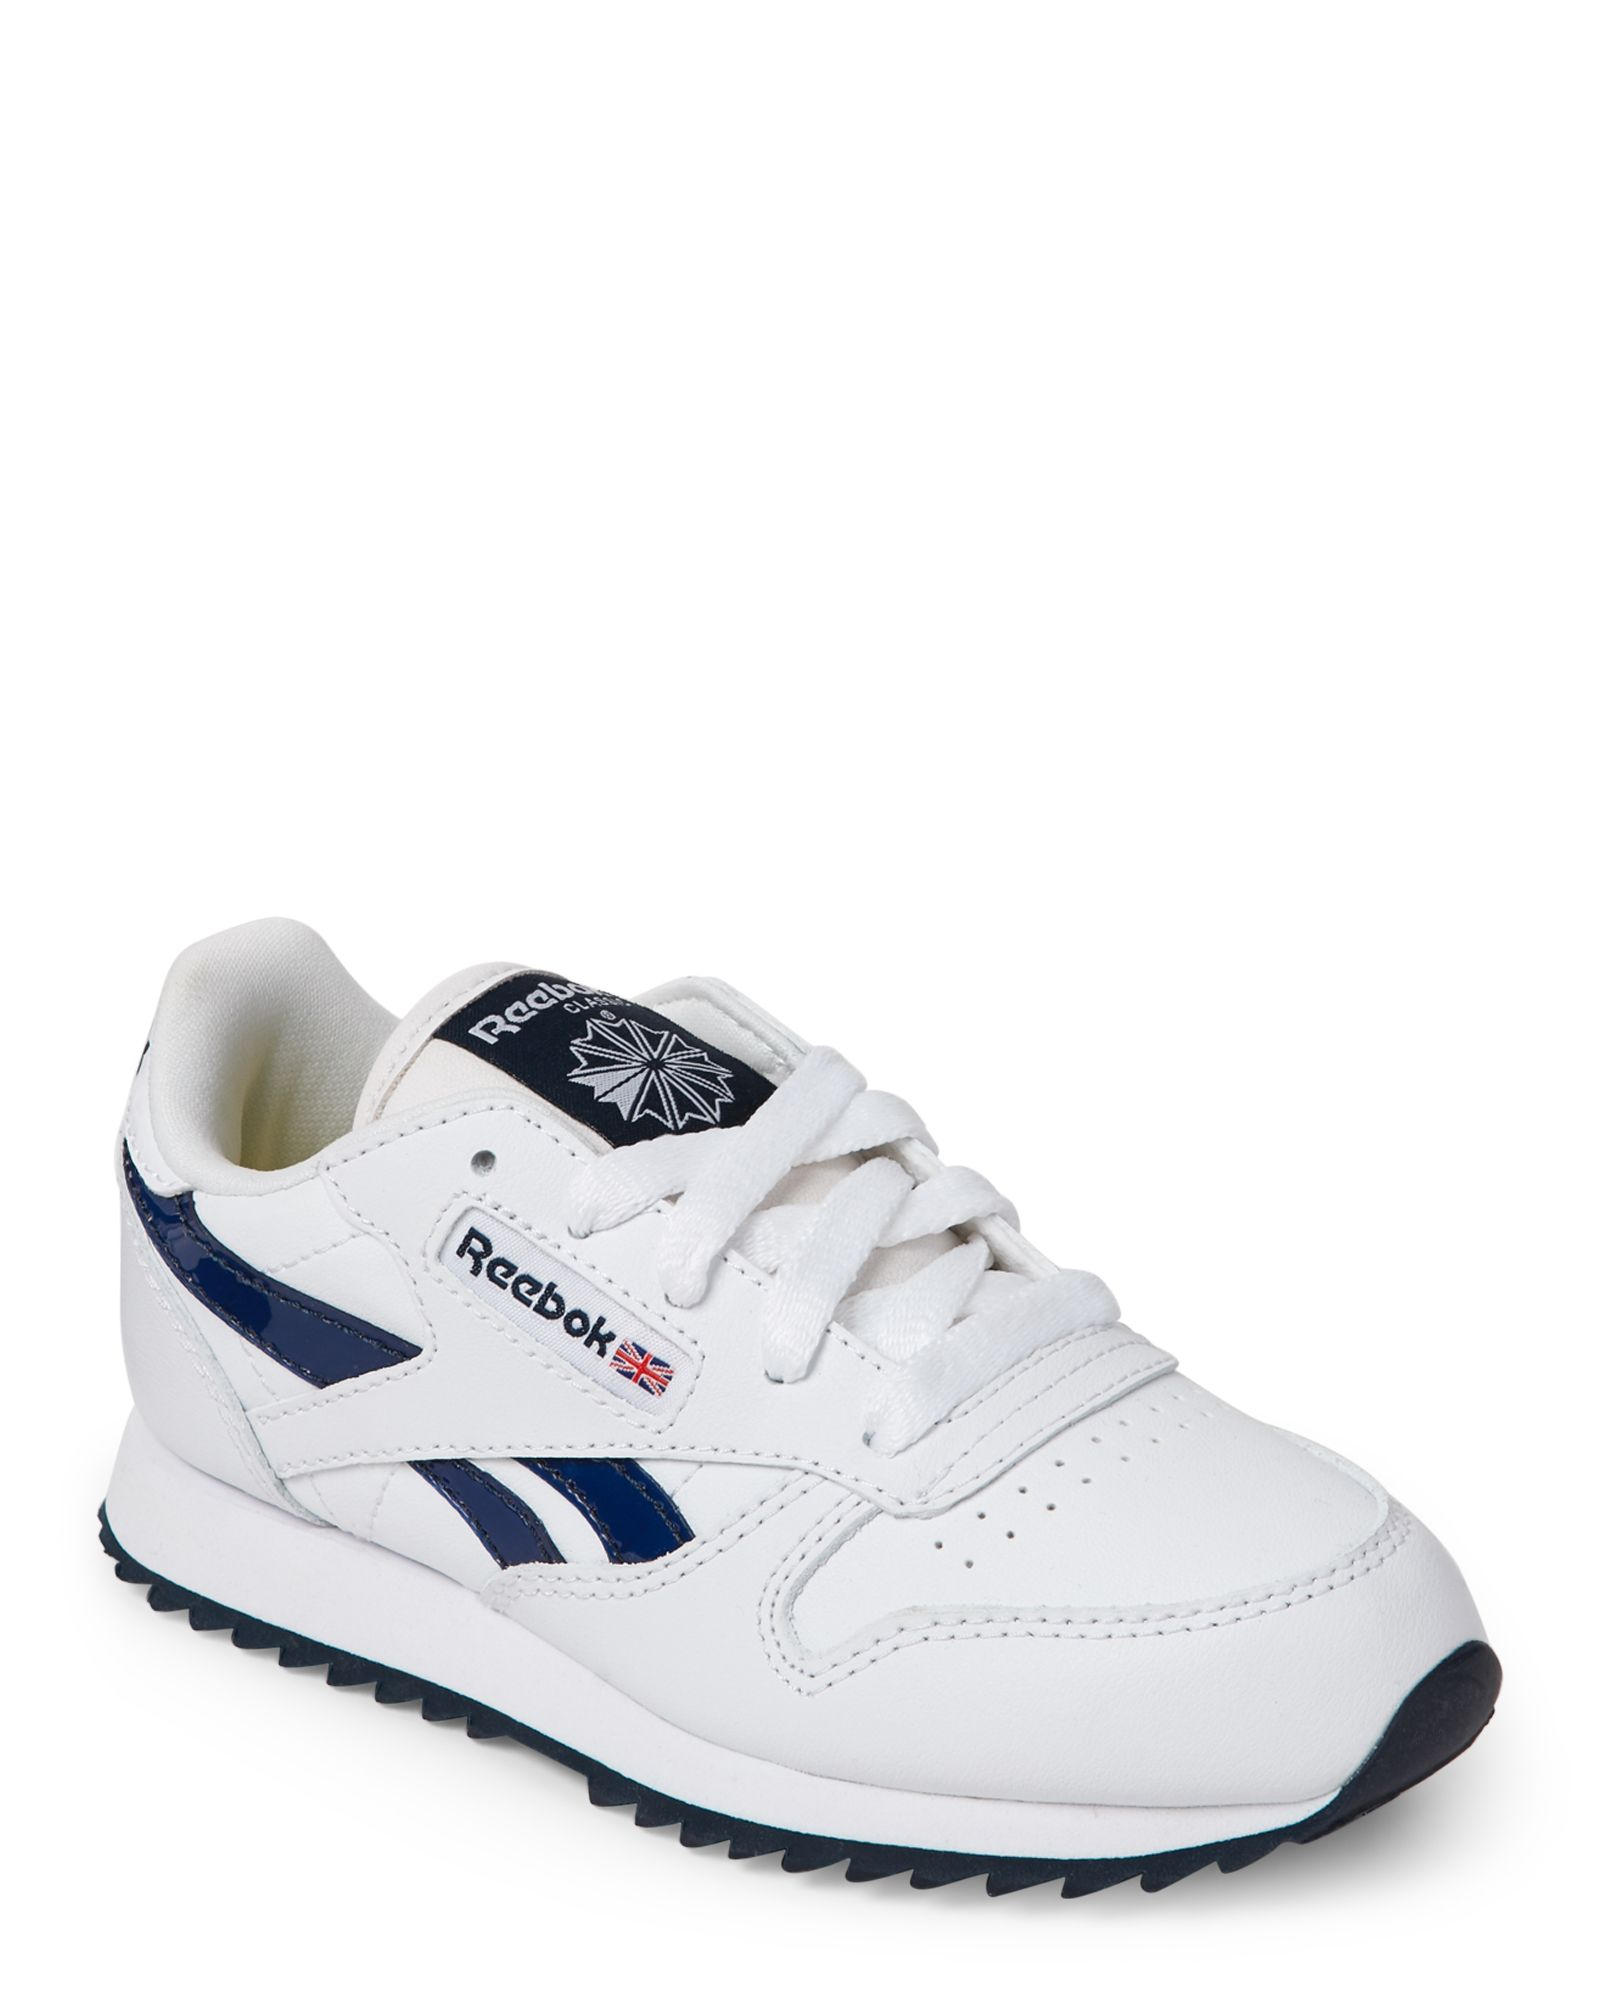 4b97111ff23 Reebok (Toddler Boys) White   Navy Classic Leather Ripple III Sneakers